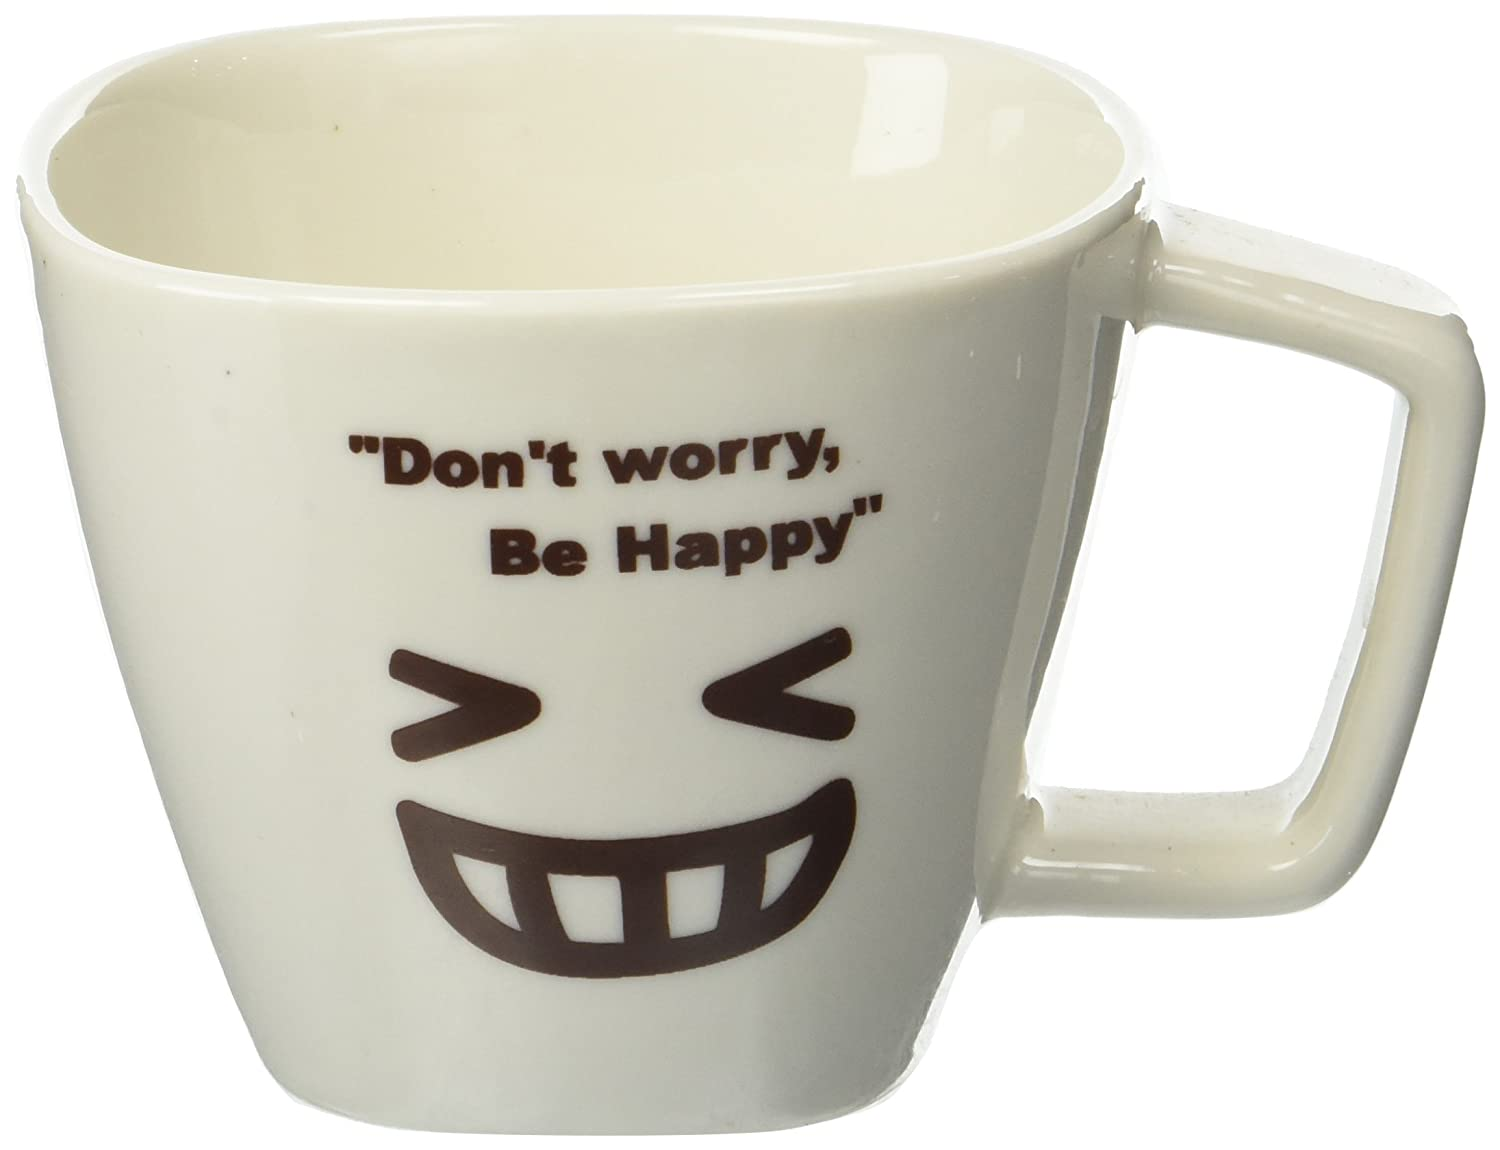 Southern HomewaresDon't Worry, Be Happy Face 03 Ceramic Tea Coffee Cup, White SH-10038